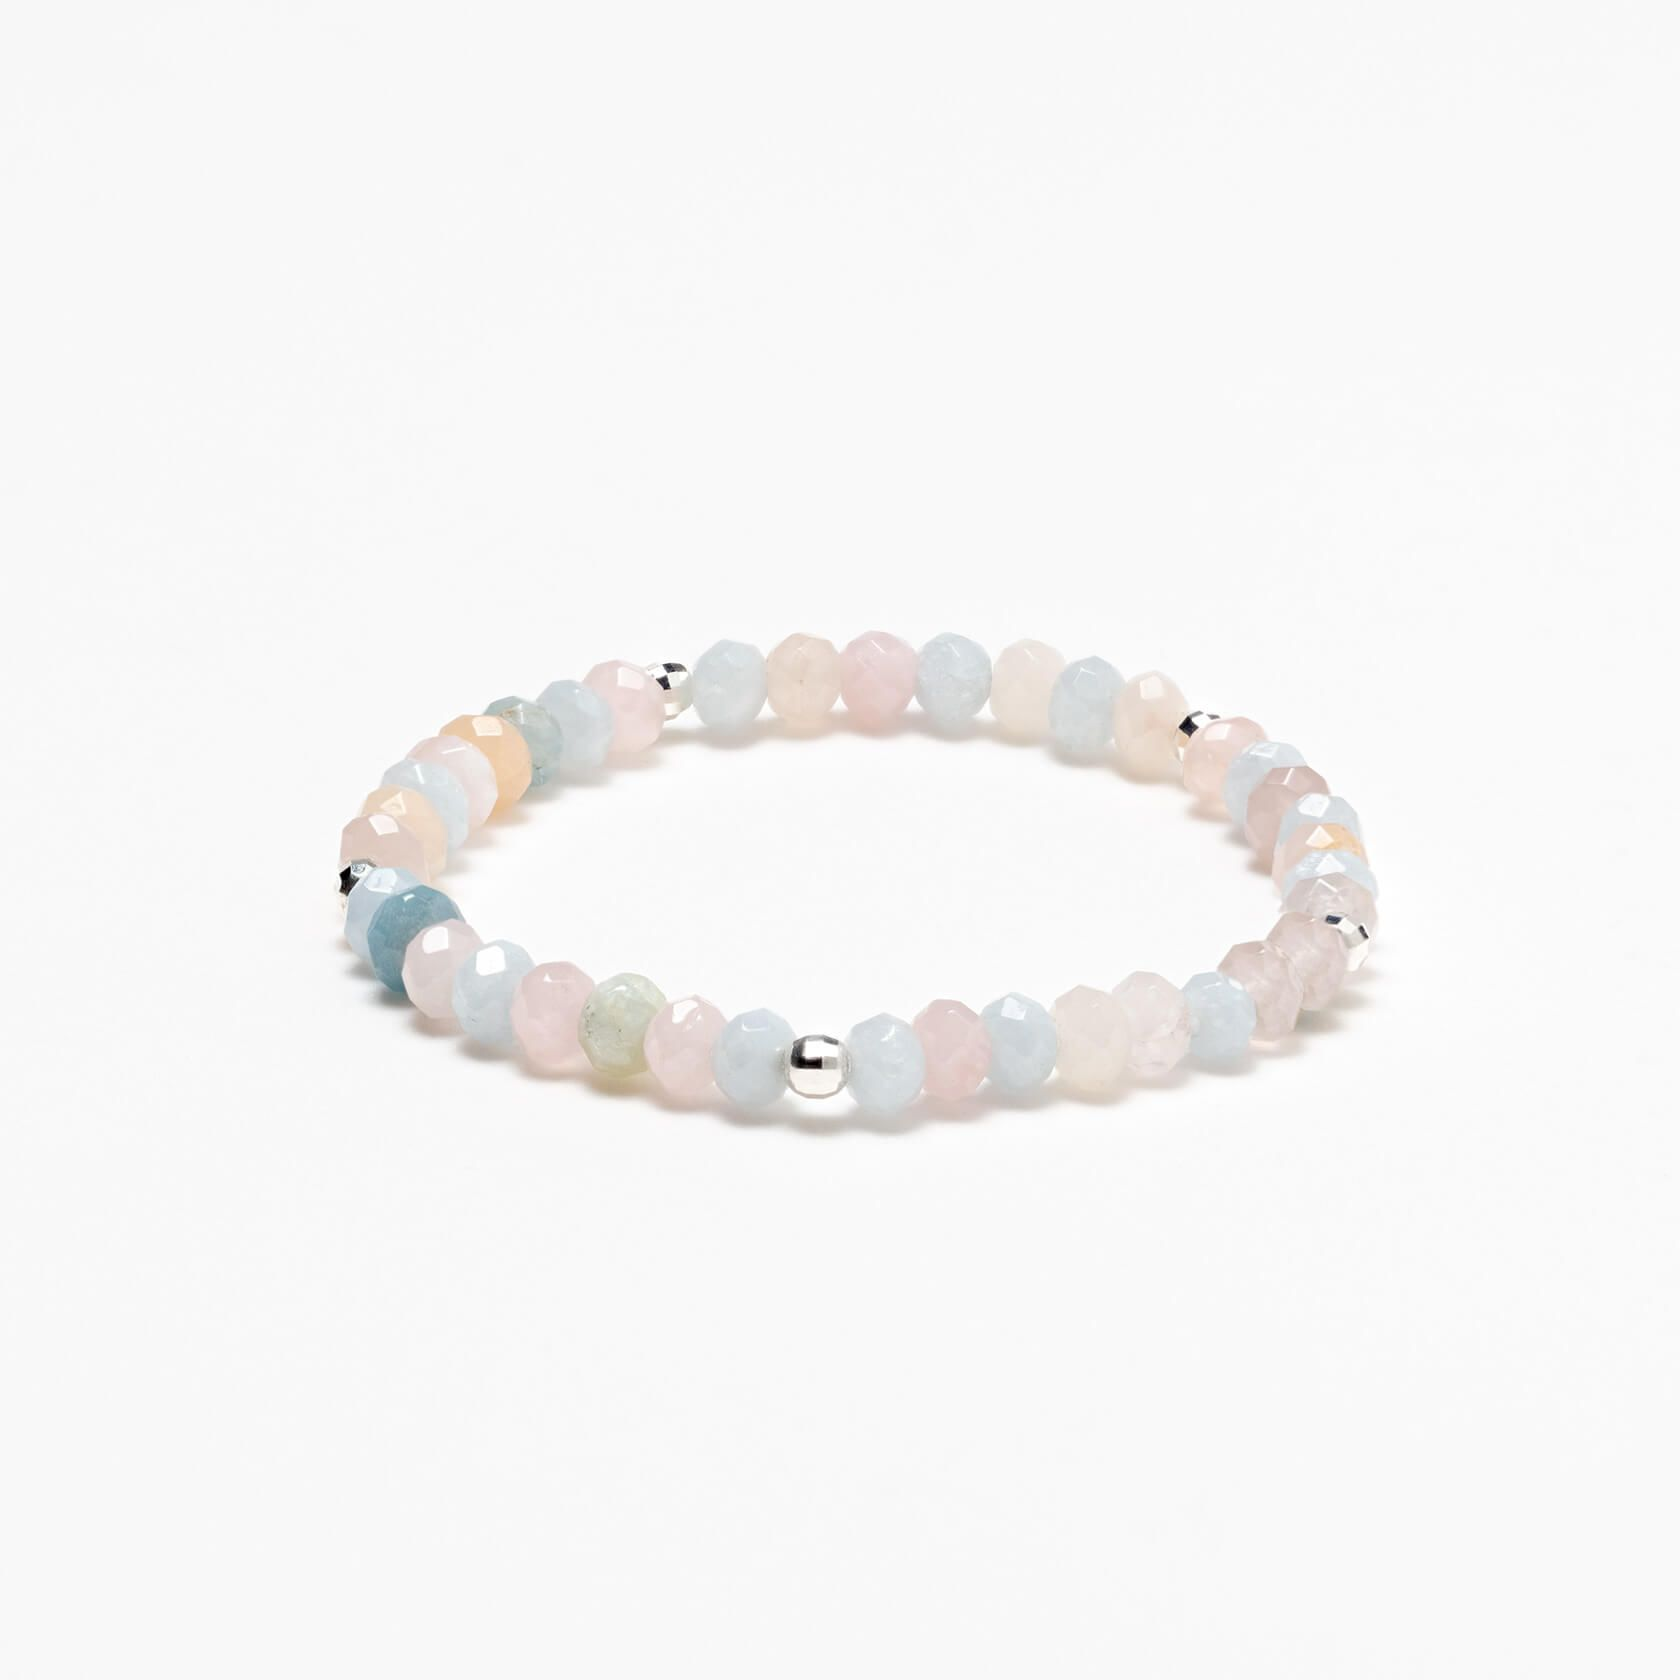 Aquamarine and morganite silver 925 bracelet